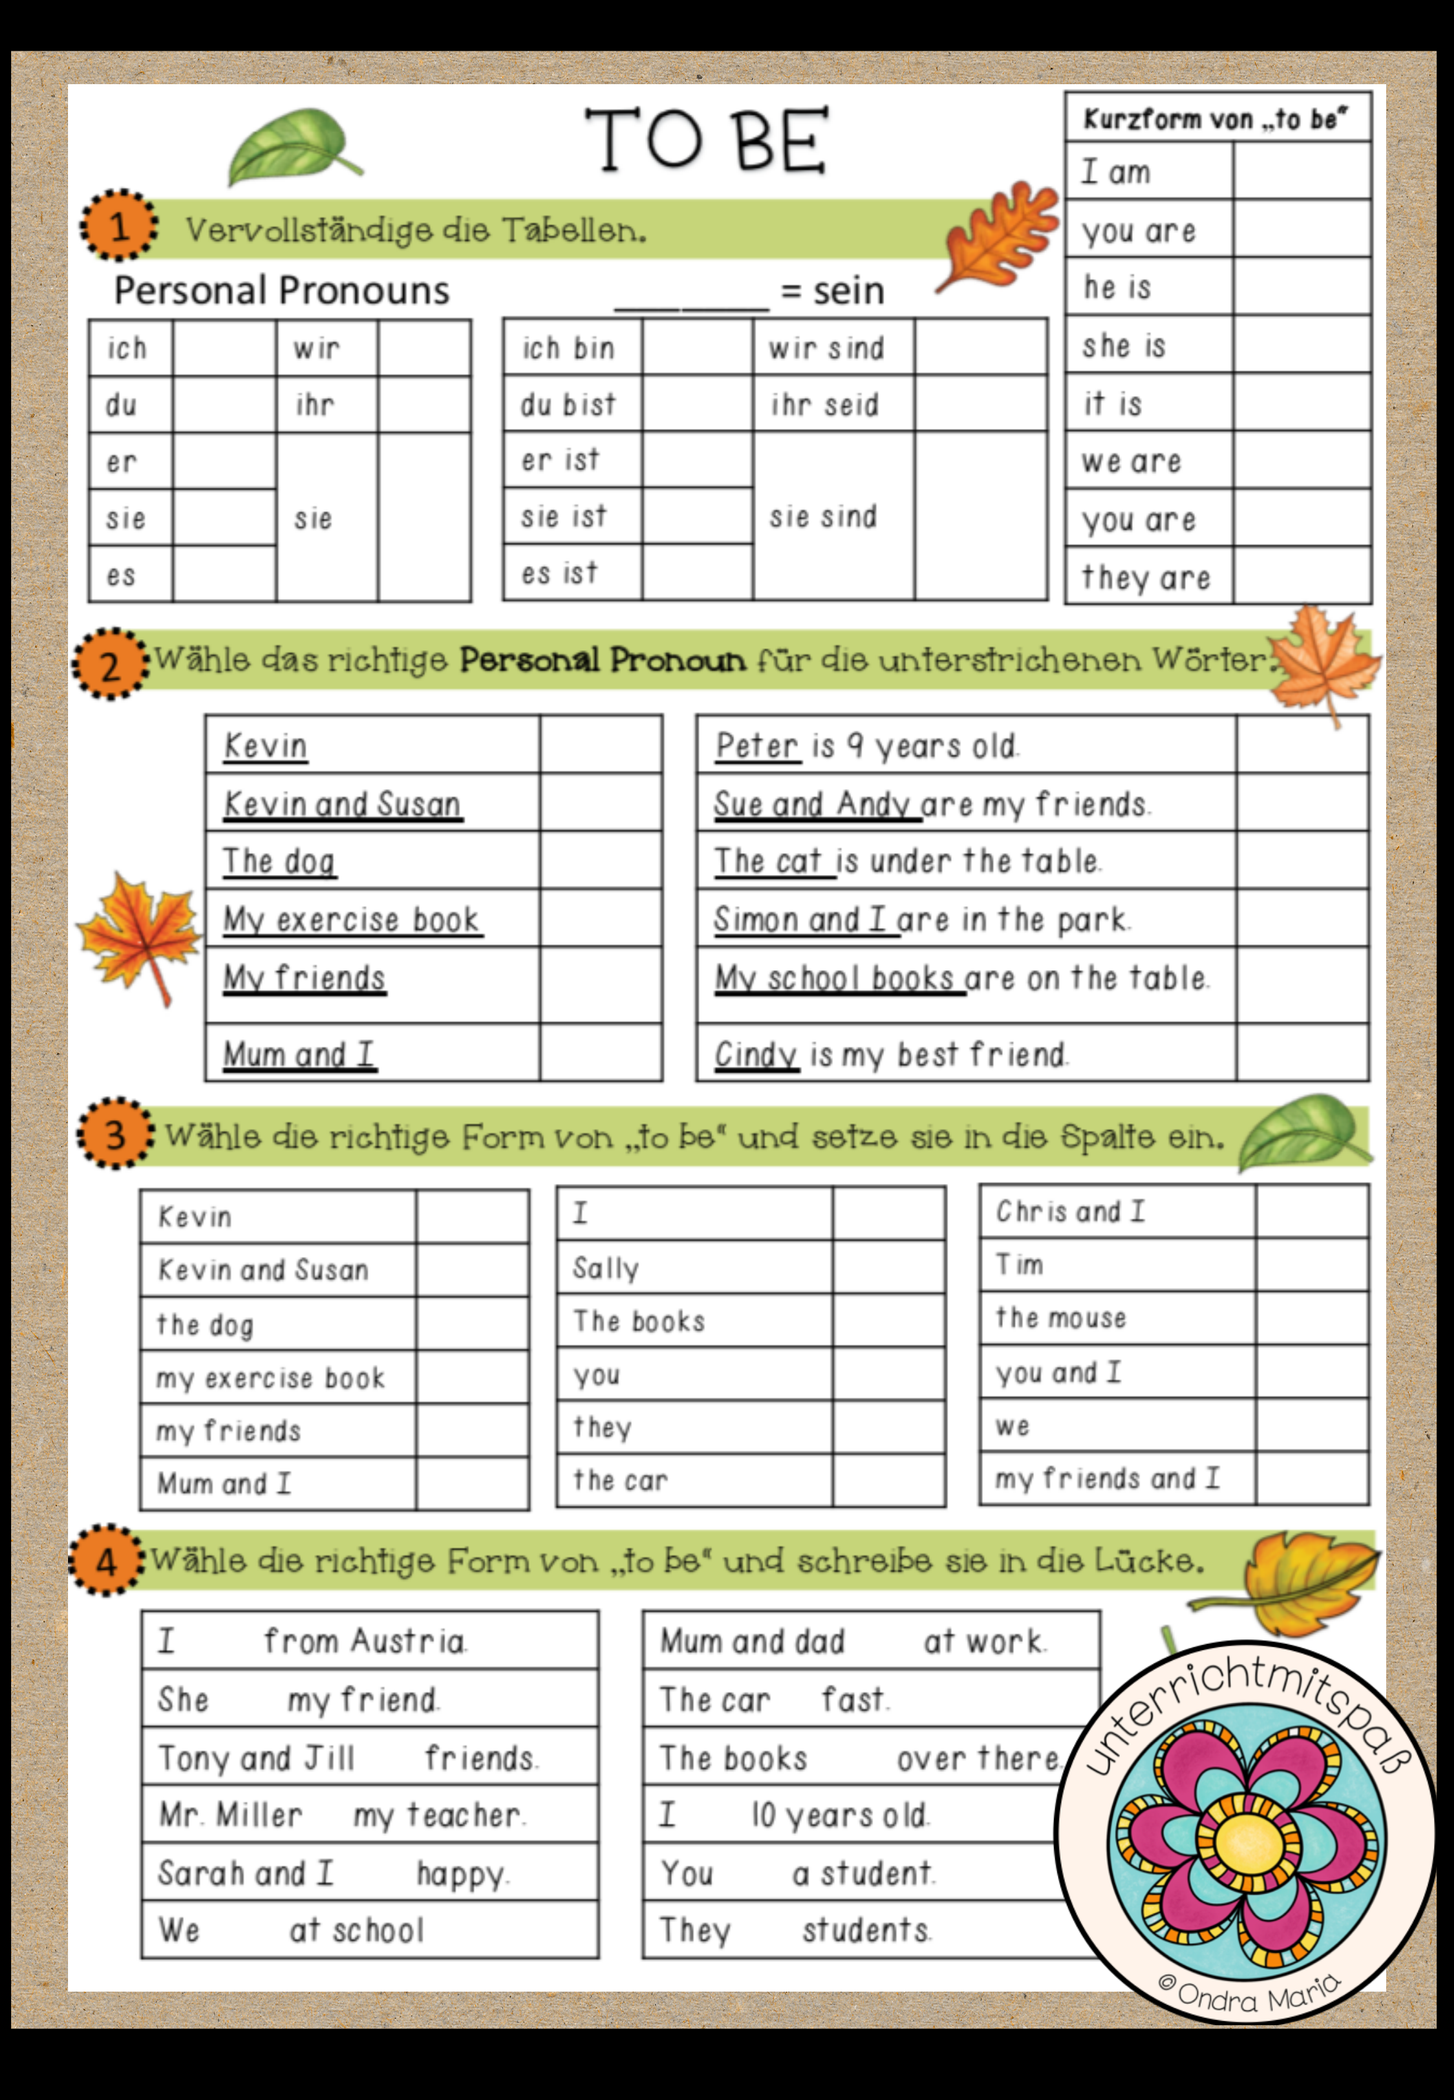 To Be Affirmative Personal Pronouns Worksheet